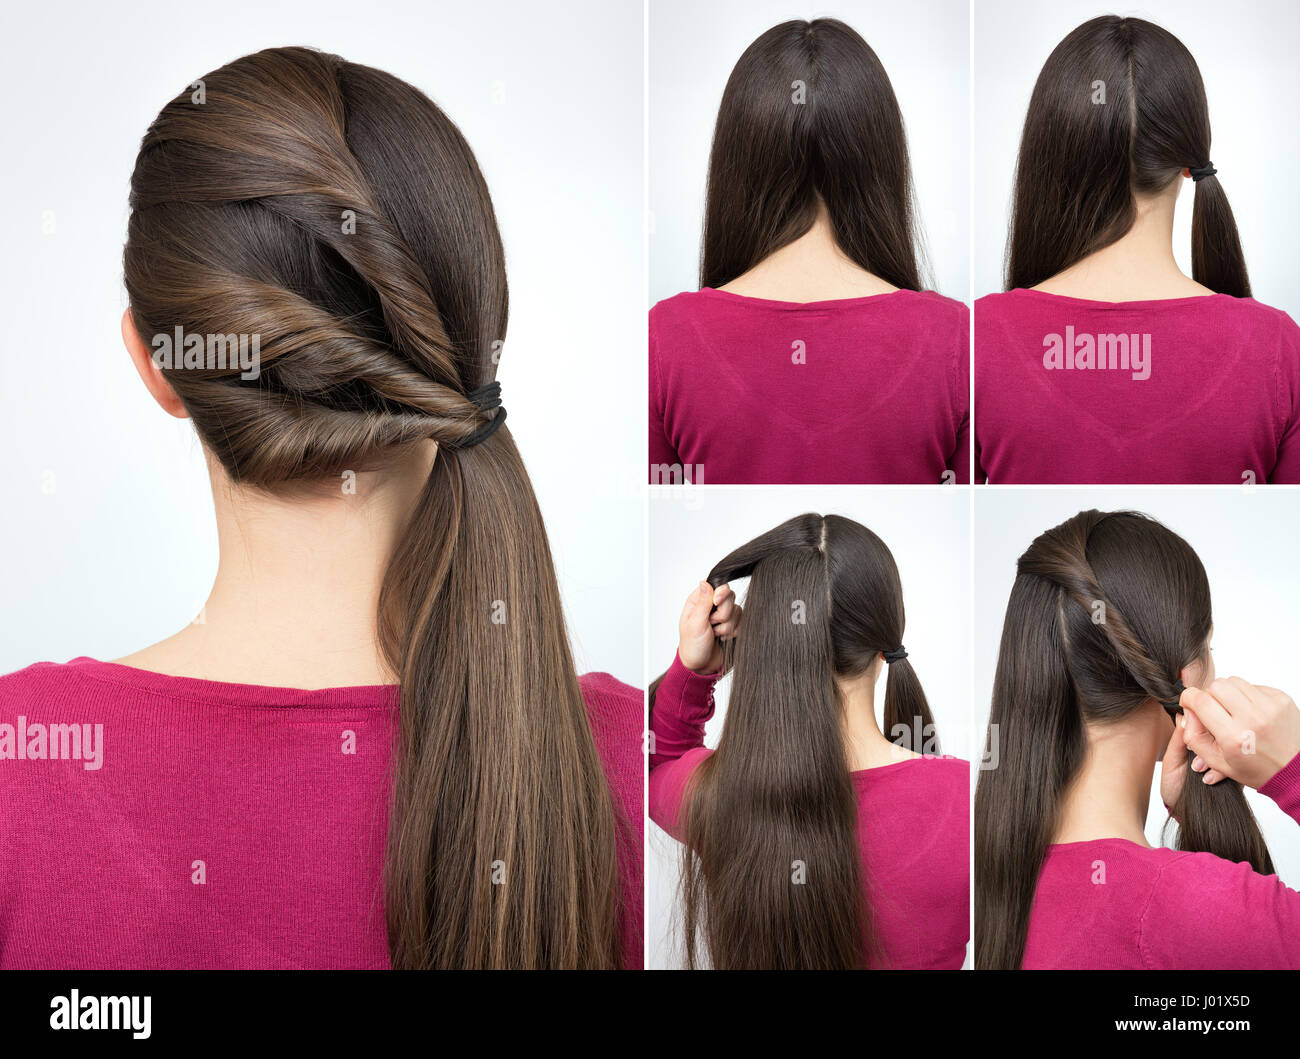 simple hairstyle pony tail with twisted hair tutorial step